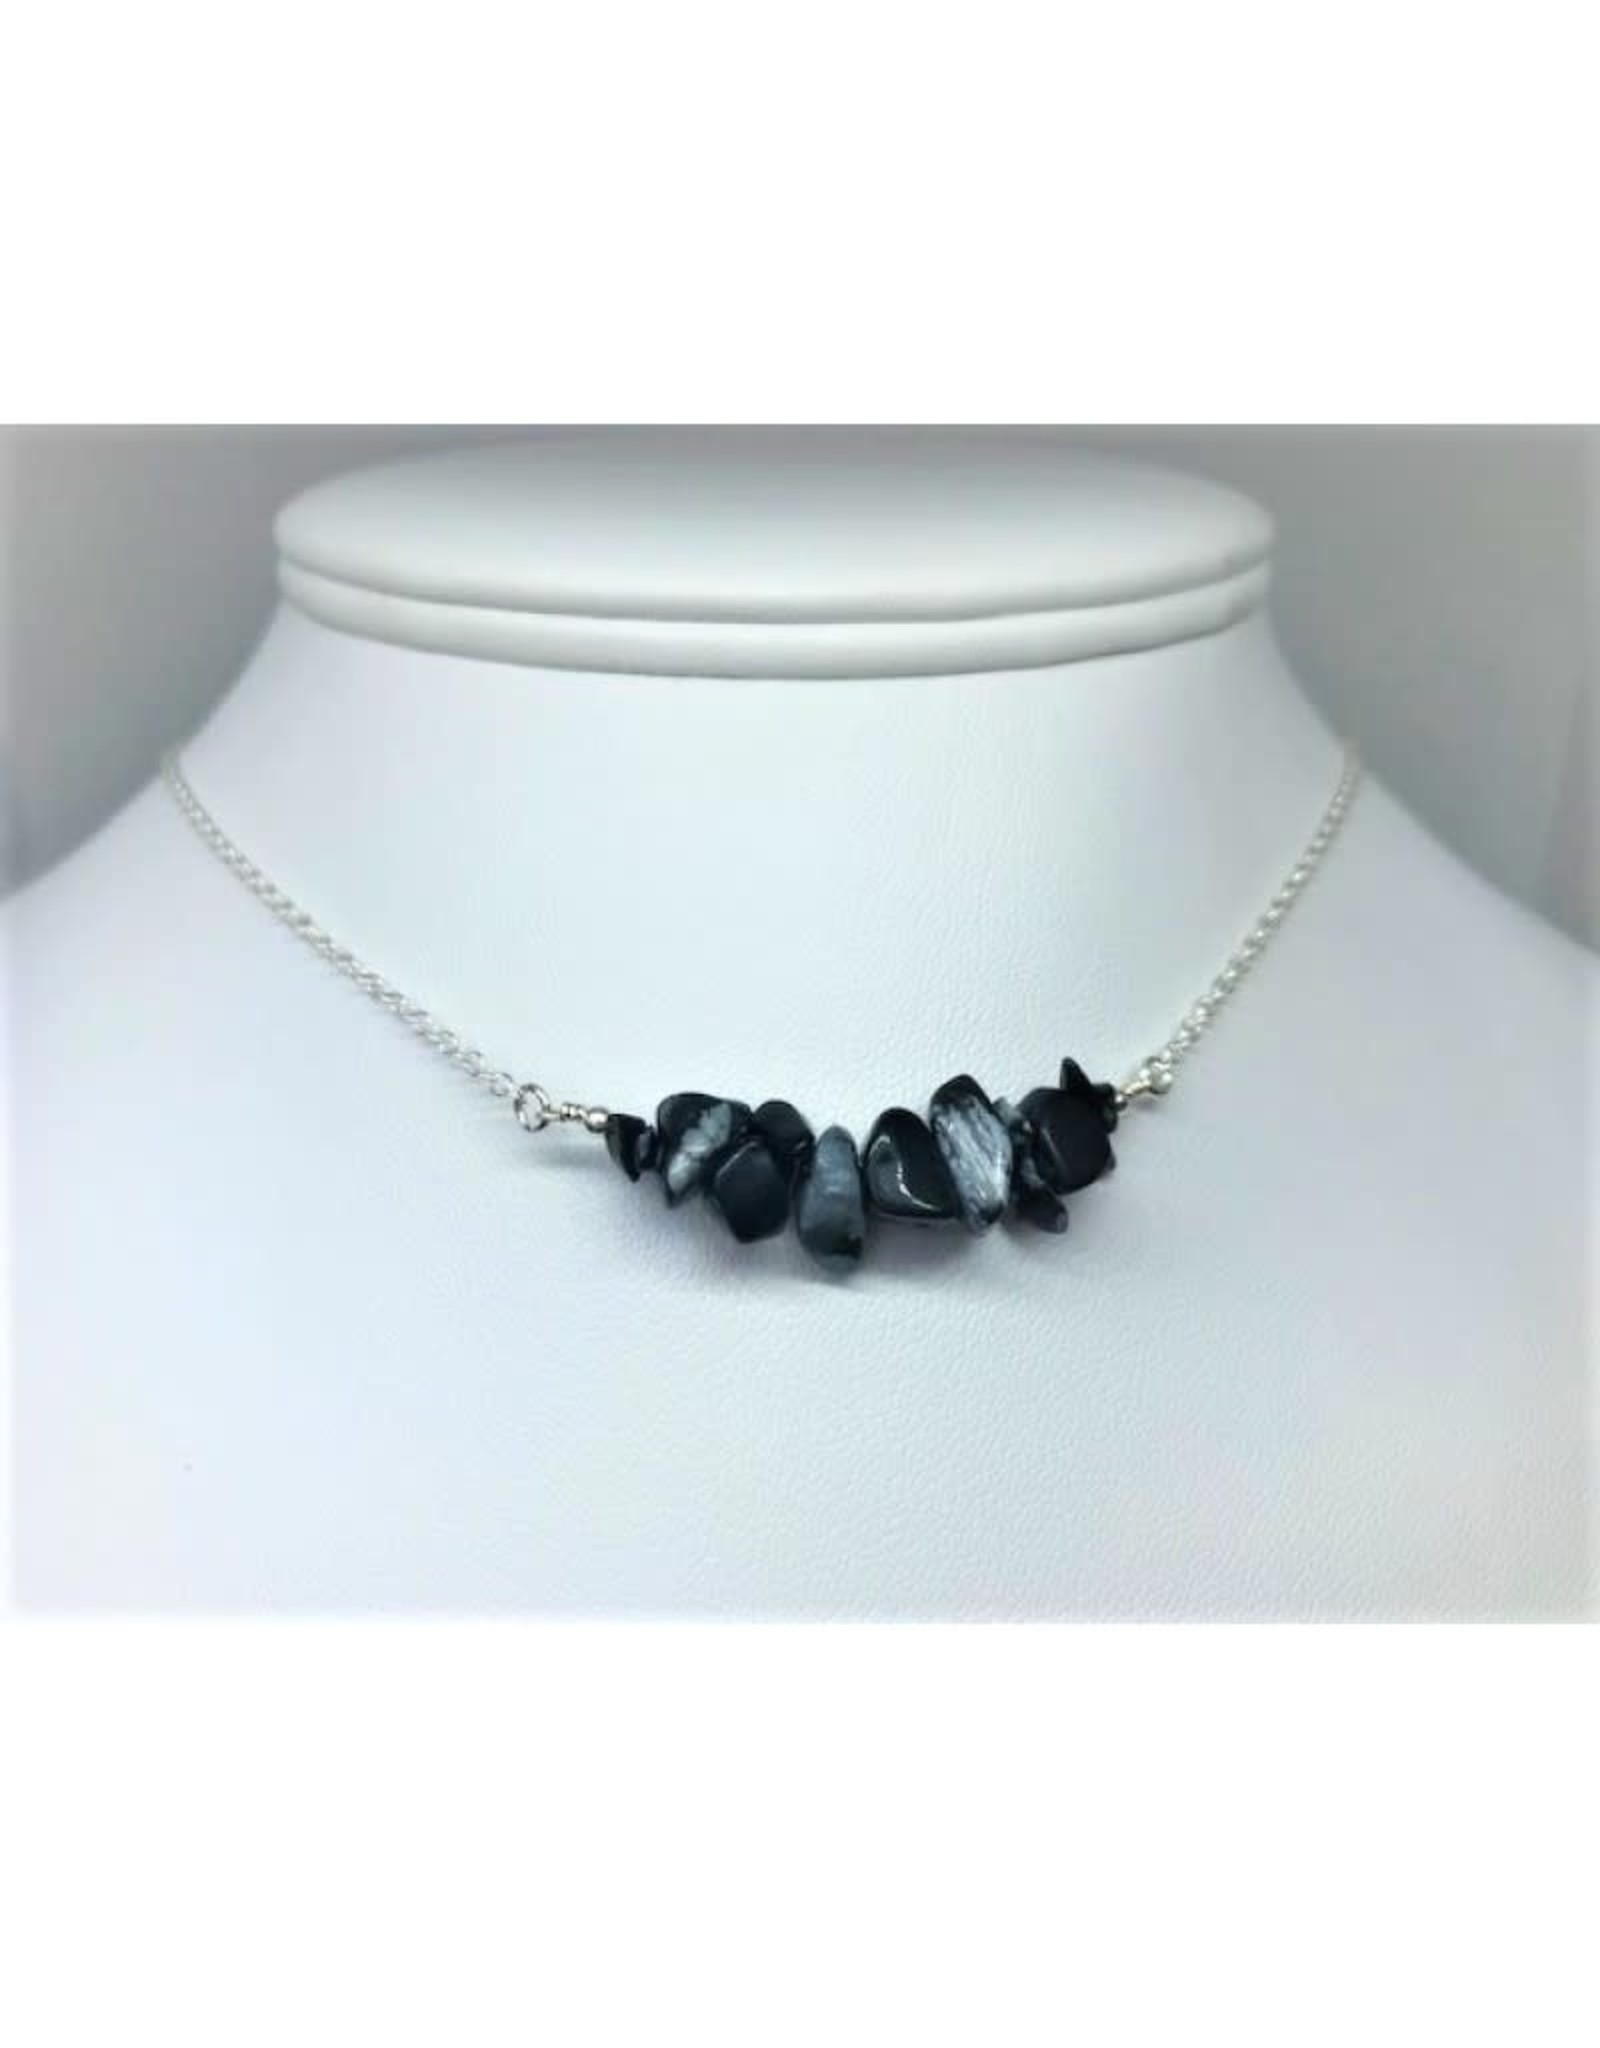 Gemstone Bar Necklace - Obsidian